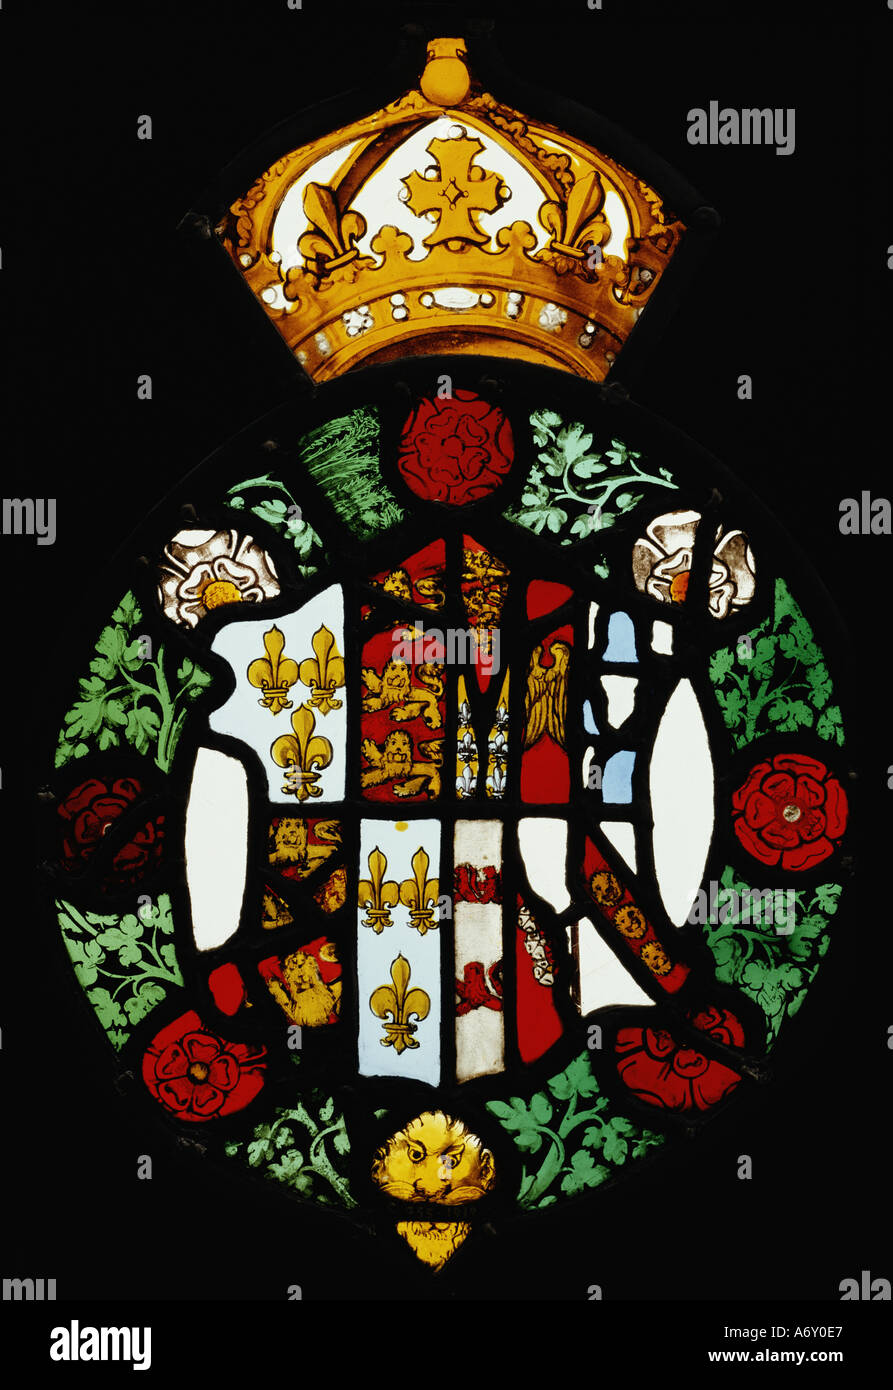 Stained glass medallion with the royal arms of Jane Seymour. England, mid 16th century. - Stock Image